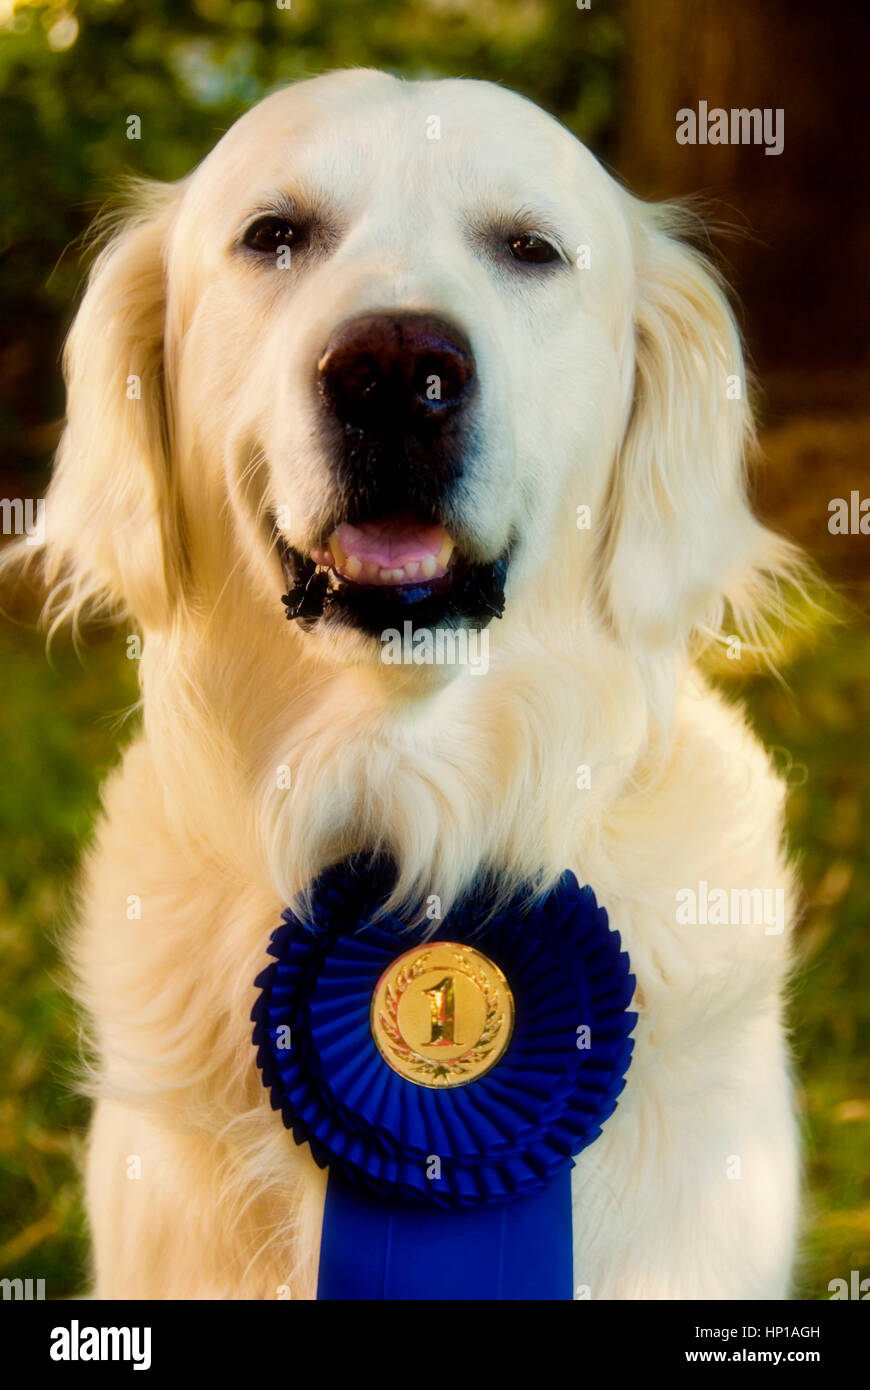 Best rescue rosette  gold centre gold ribbon dog show